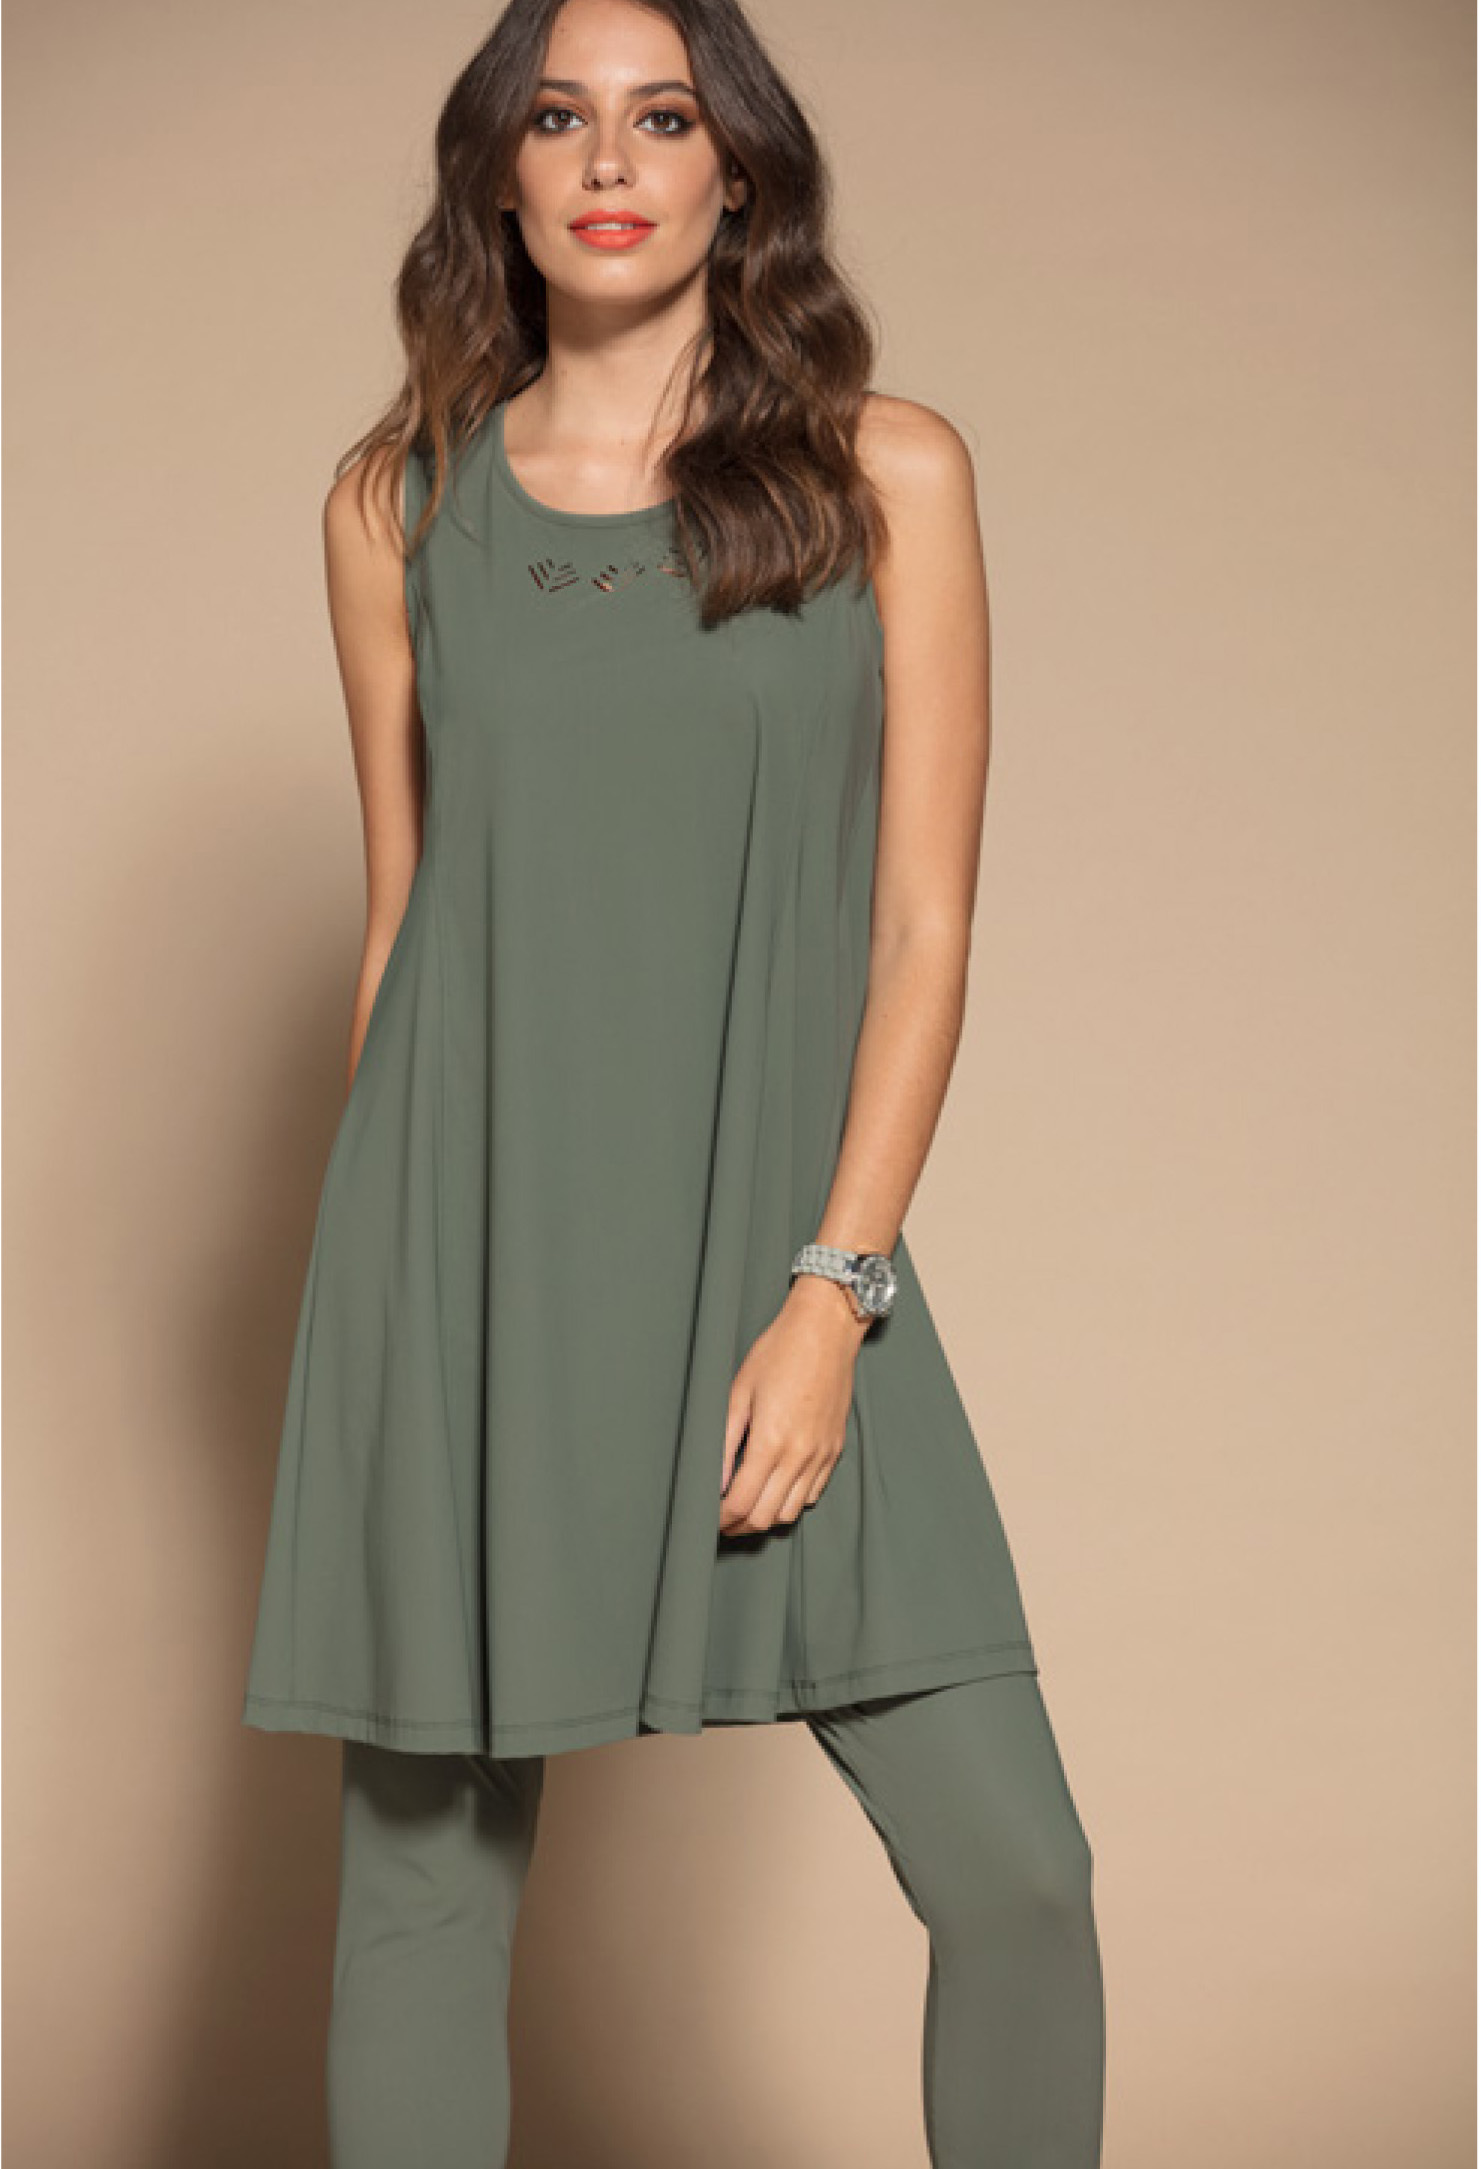 Maloka: Sleek Swirl Decolletage Flare Tunic (Click for more colors!)